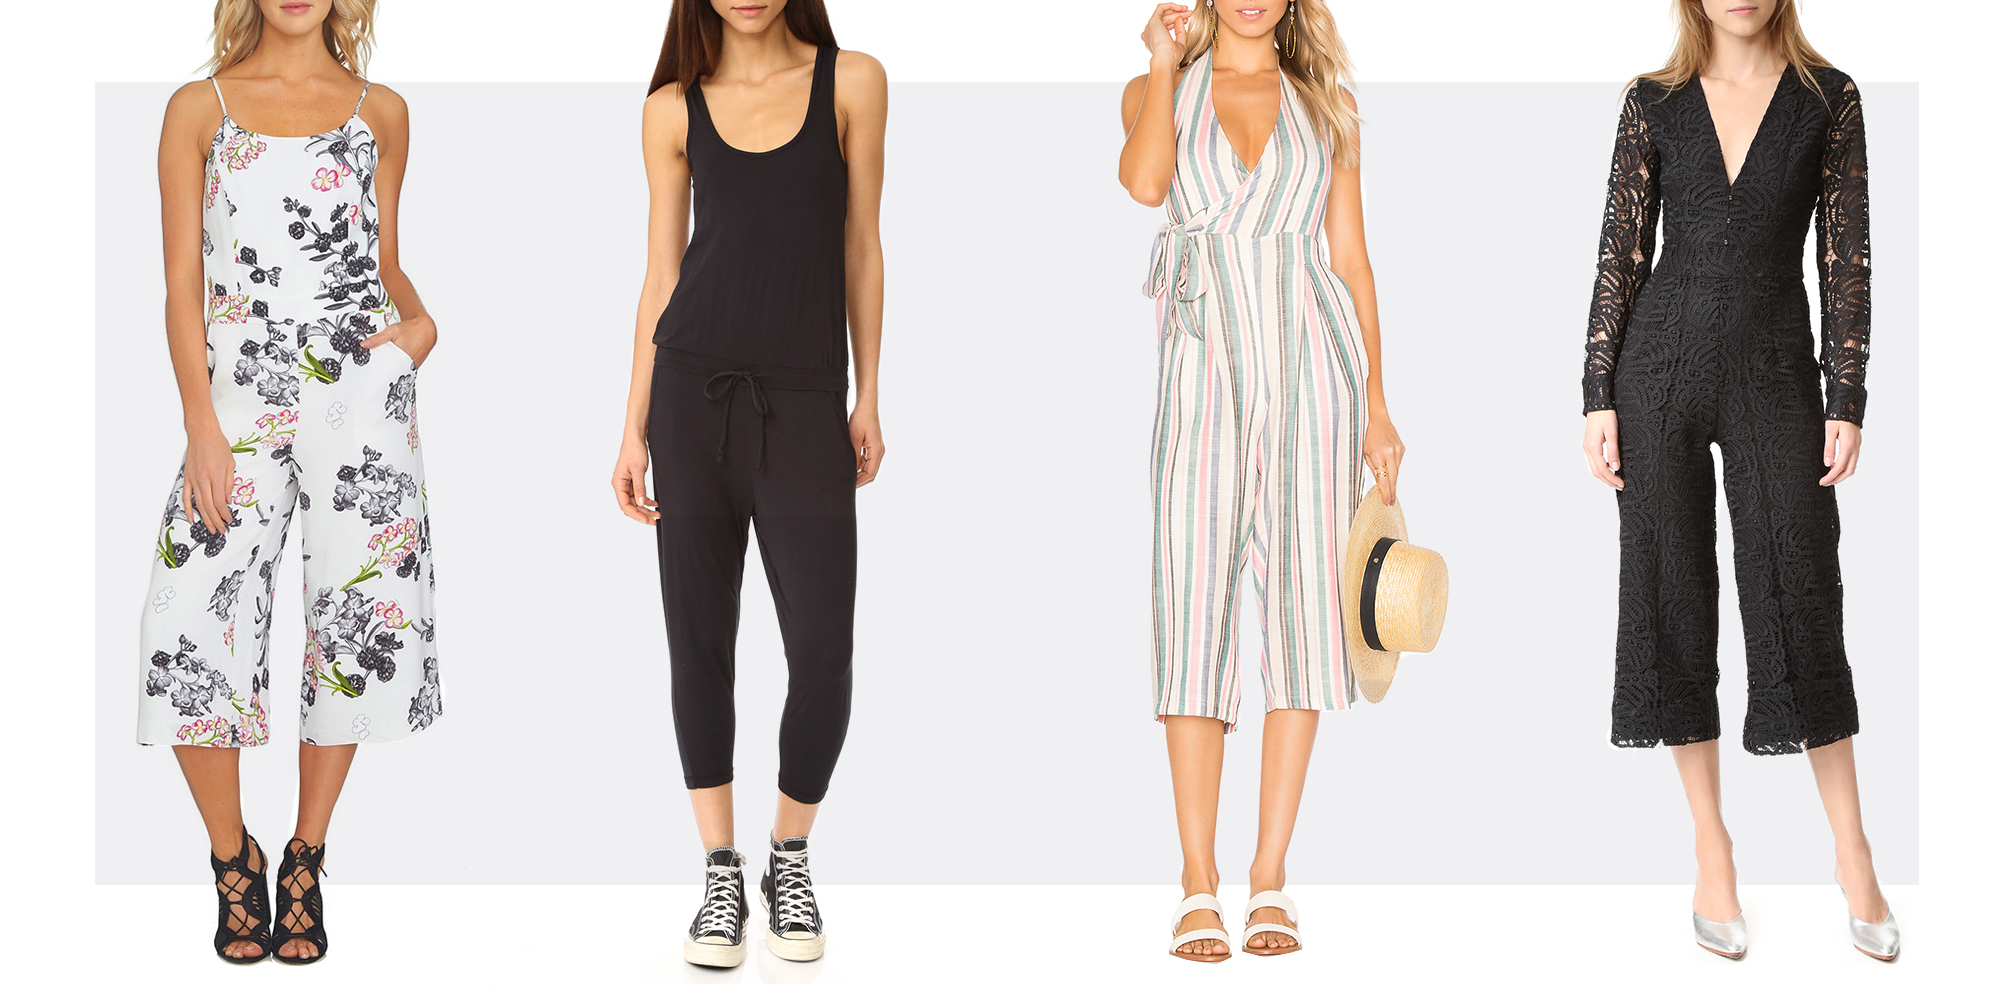 10 Best Jumpsuits For Women In 2017 Casual And Dressy Jumpsuits For Spring